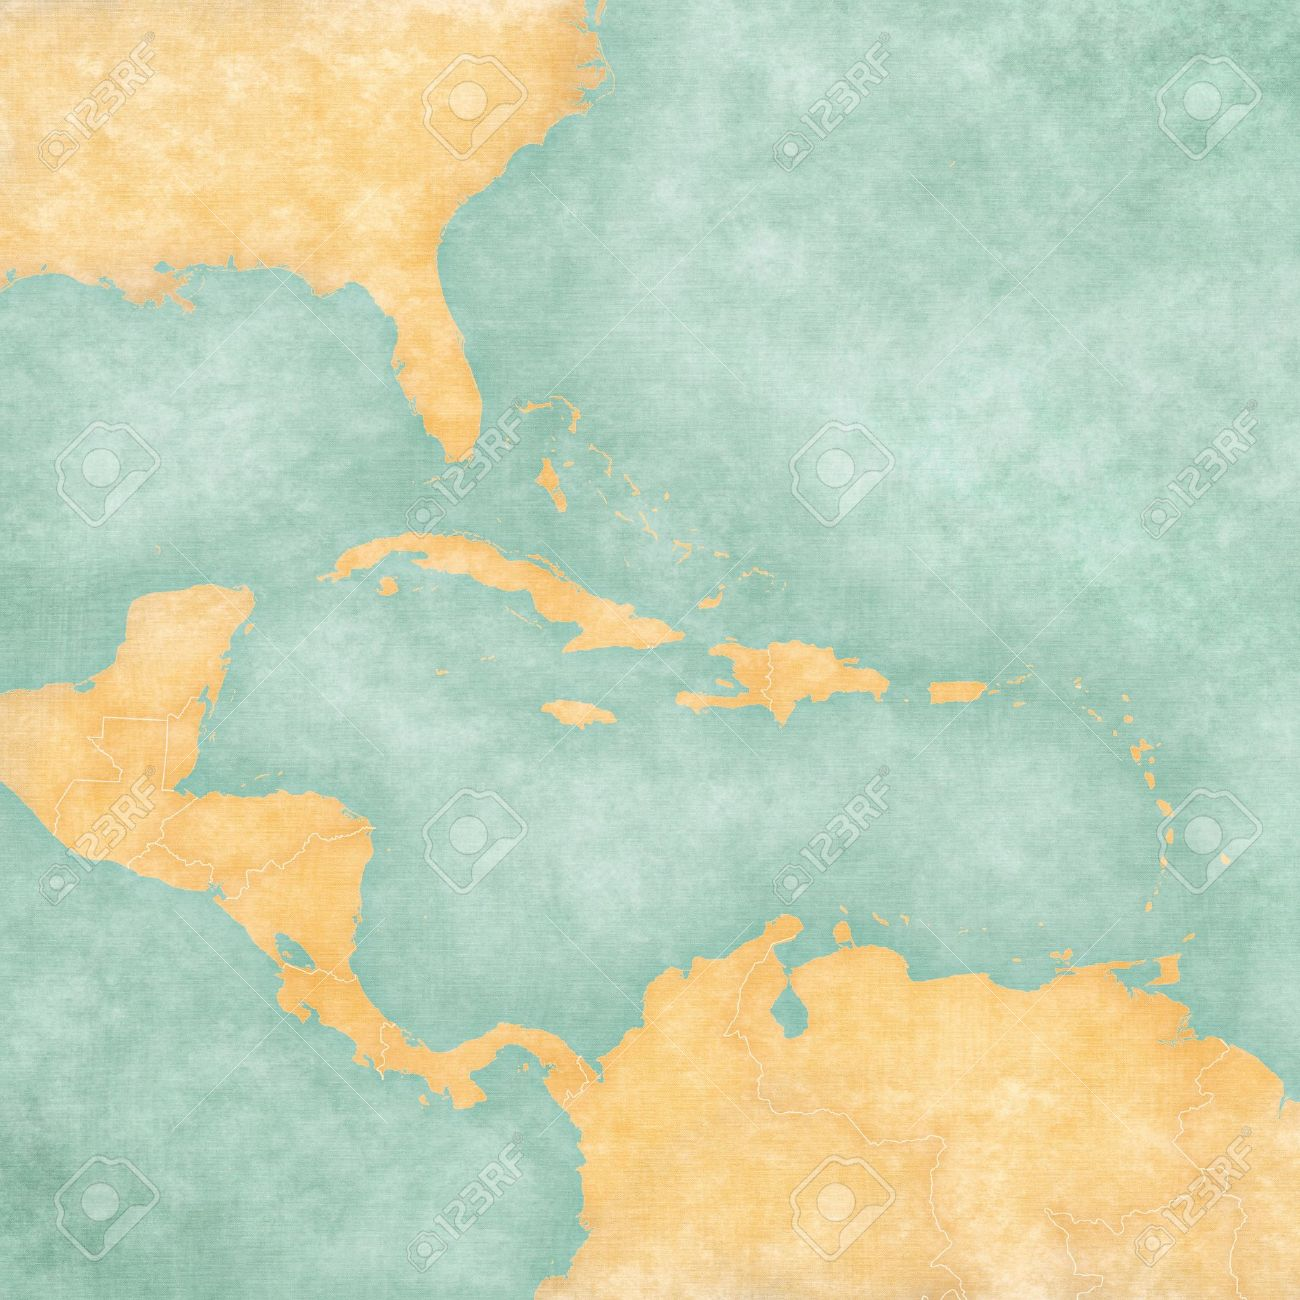 Blank Map Of Caribbean And Central America The Map Is In Vintage ...